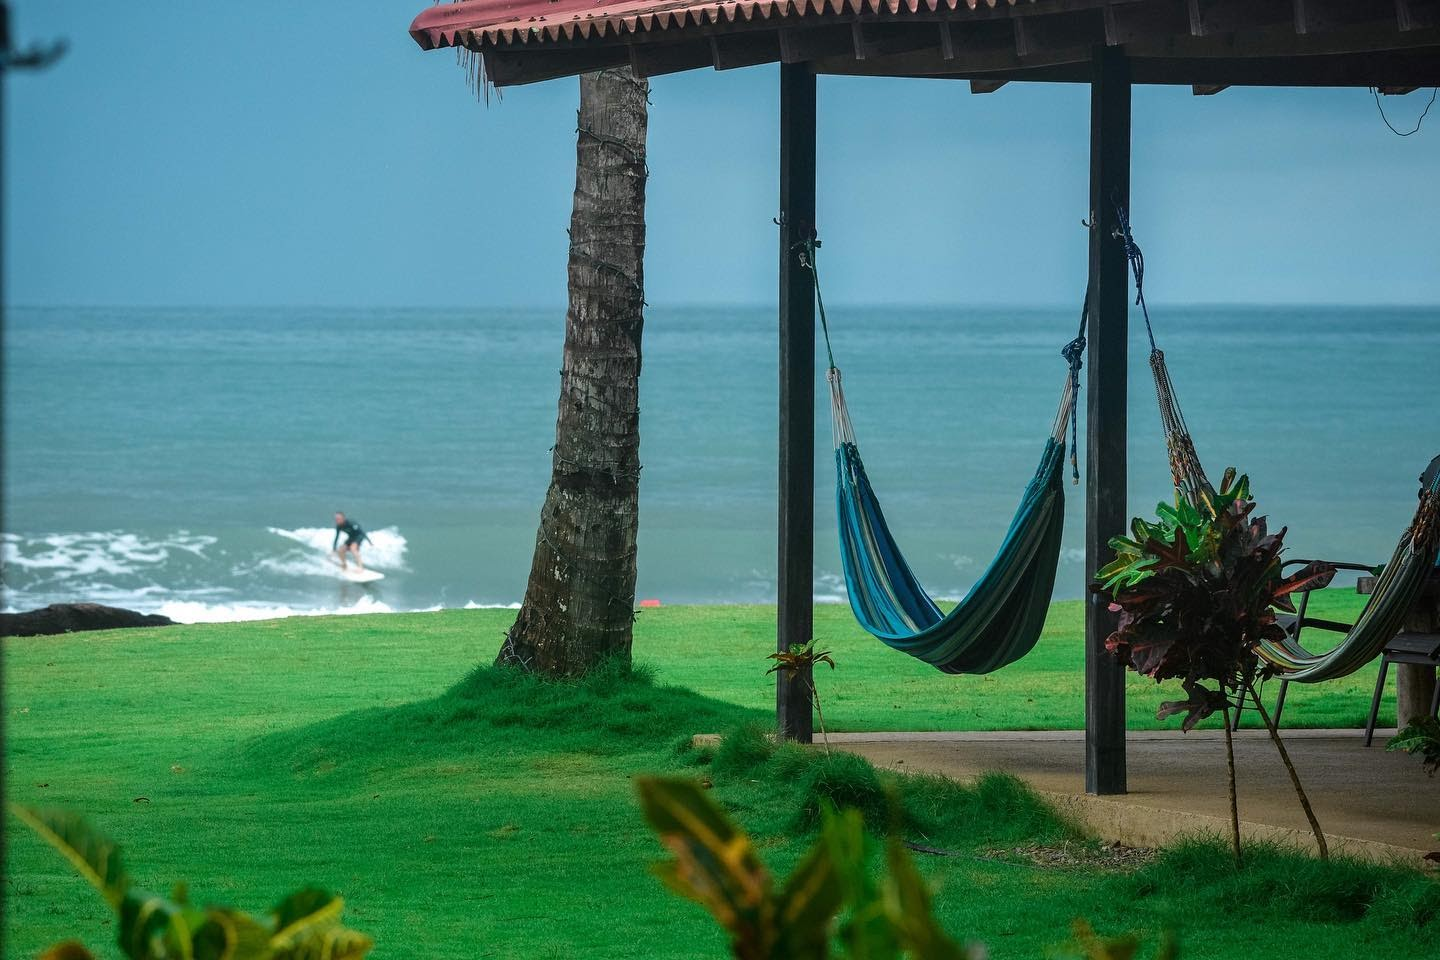 picture of hammocks with surfer catching a wave in the background